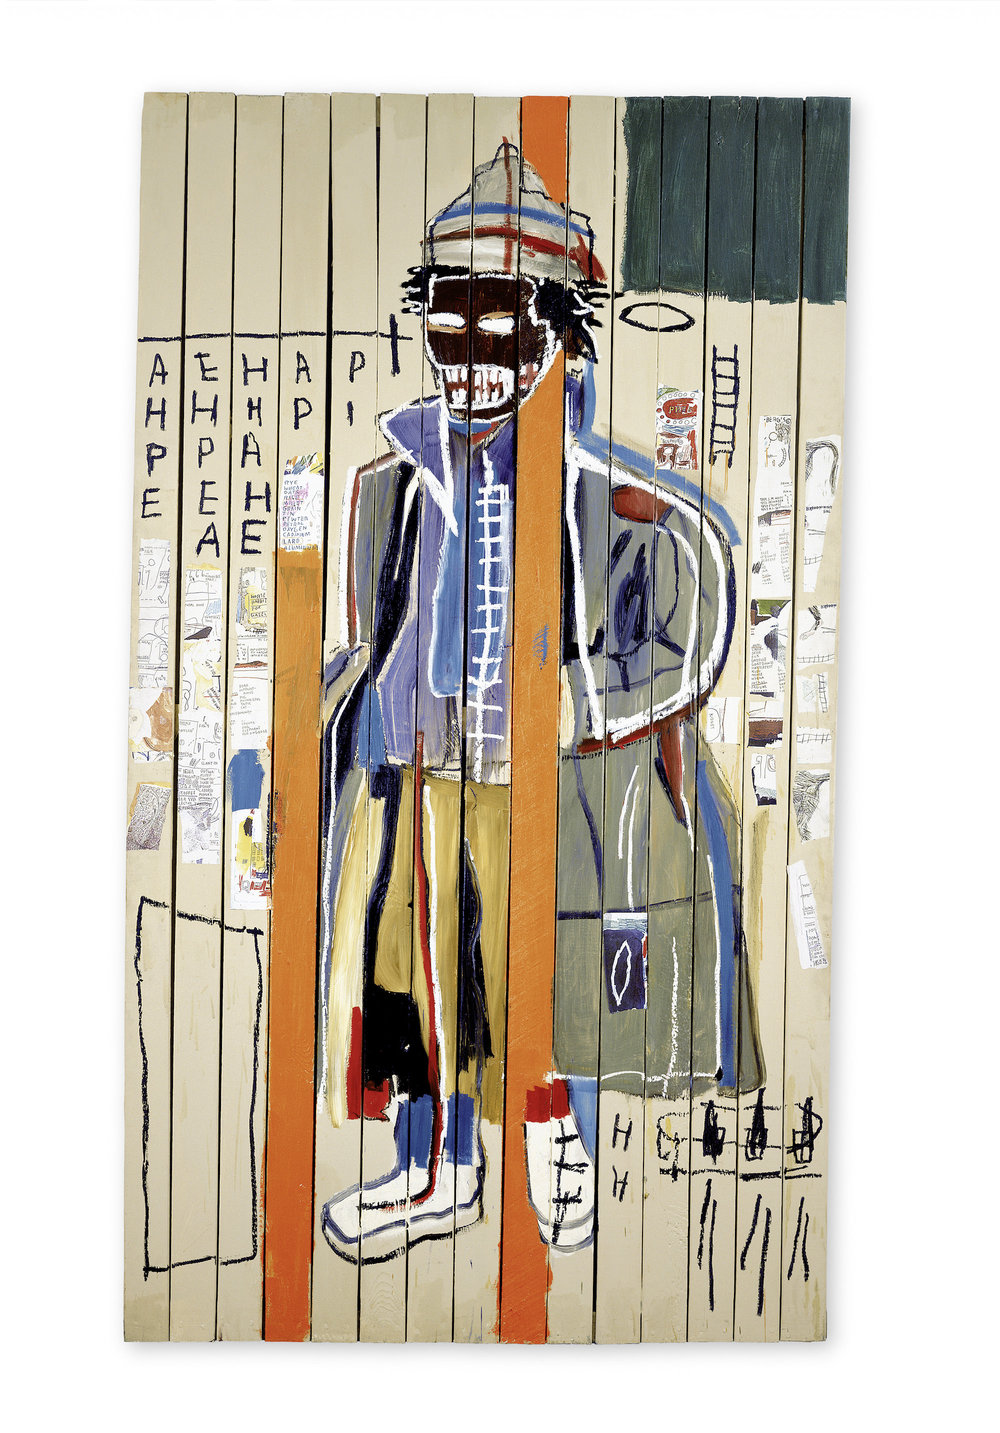 Anthony Clarke, 1985 Acrylic, oil, oilstick, and photocopy collage on wood, 244 x 139 cm / 96 x 54 3/4 inches Photo: Courtesy Lio Malca Copyright: © The Estate of Jean-Michel Basquiat. Licensed by Artestar, New York